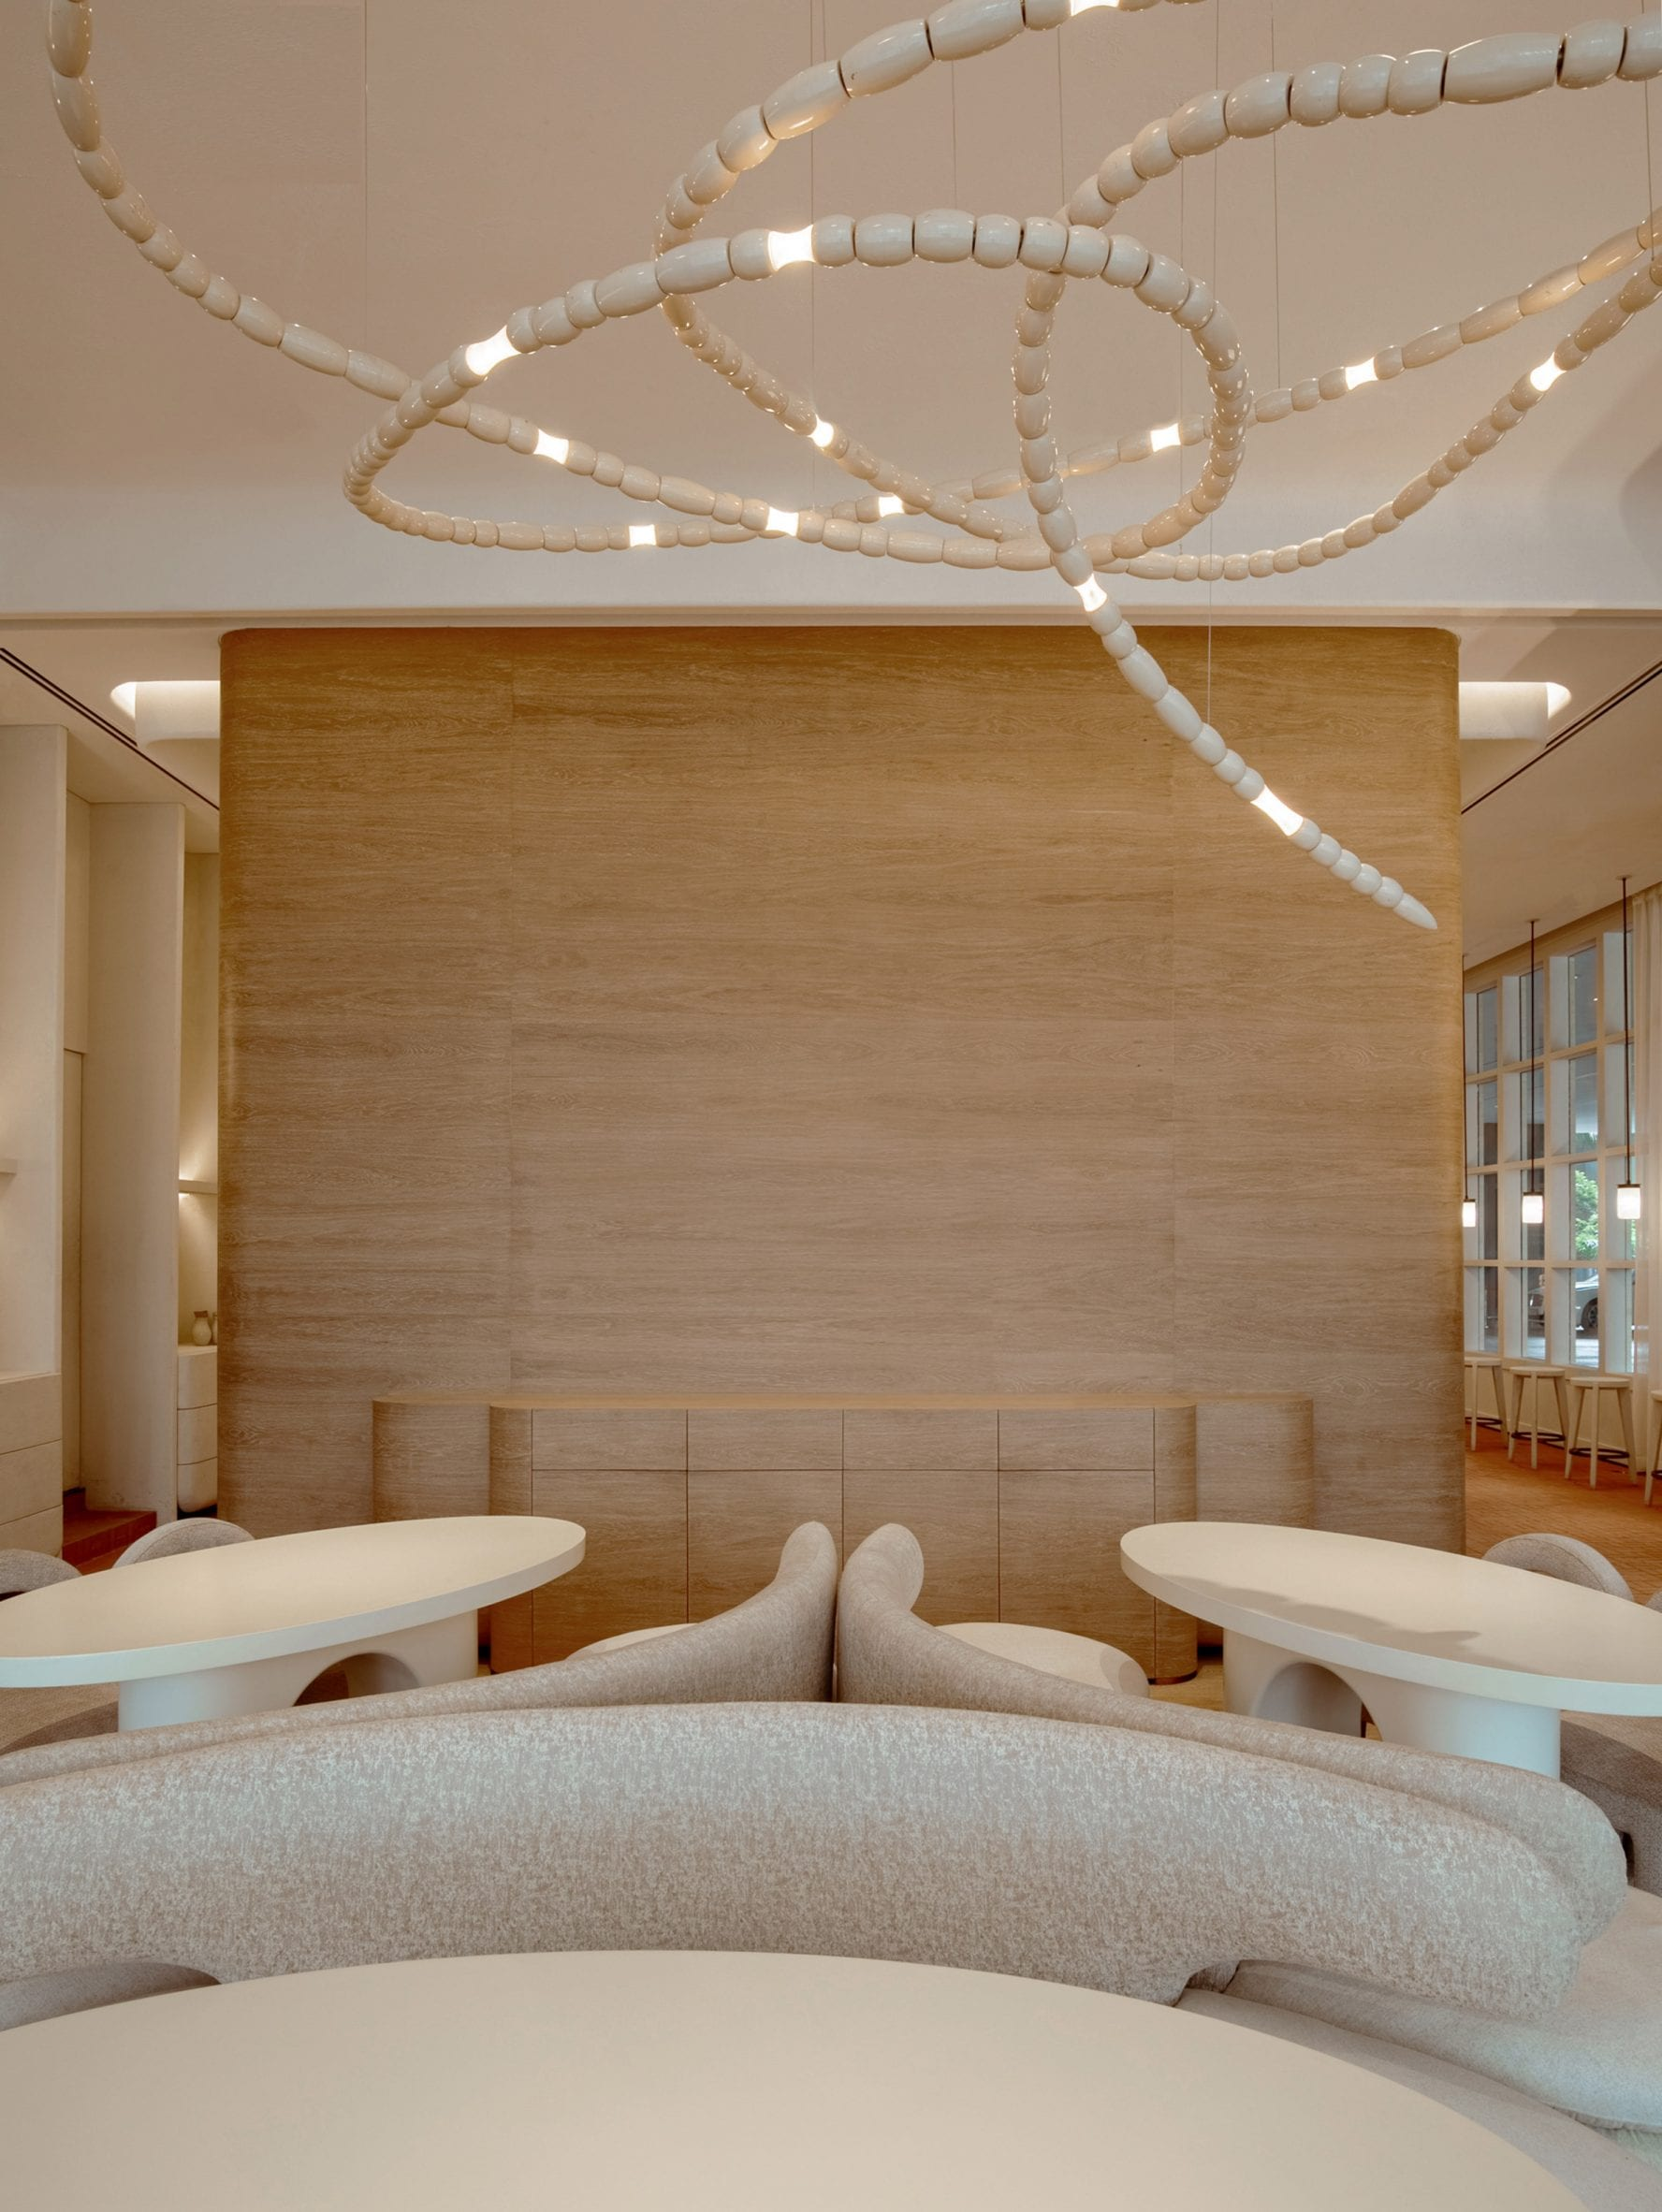 Seating area with oak veneer walls and sculptural chandelier made from wooden beads in restaurant interior by Ashiesh Shah